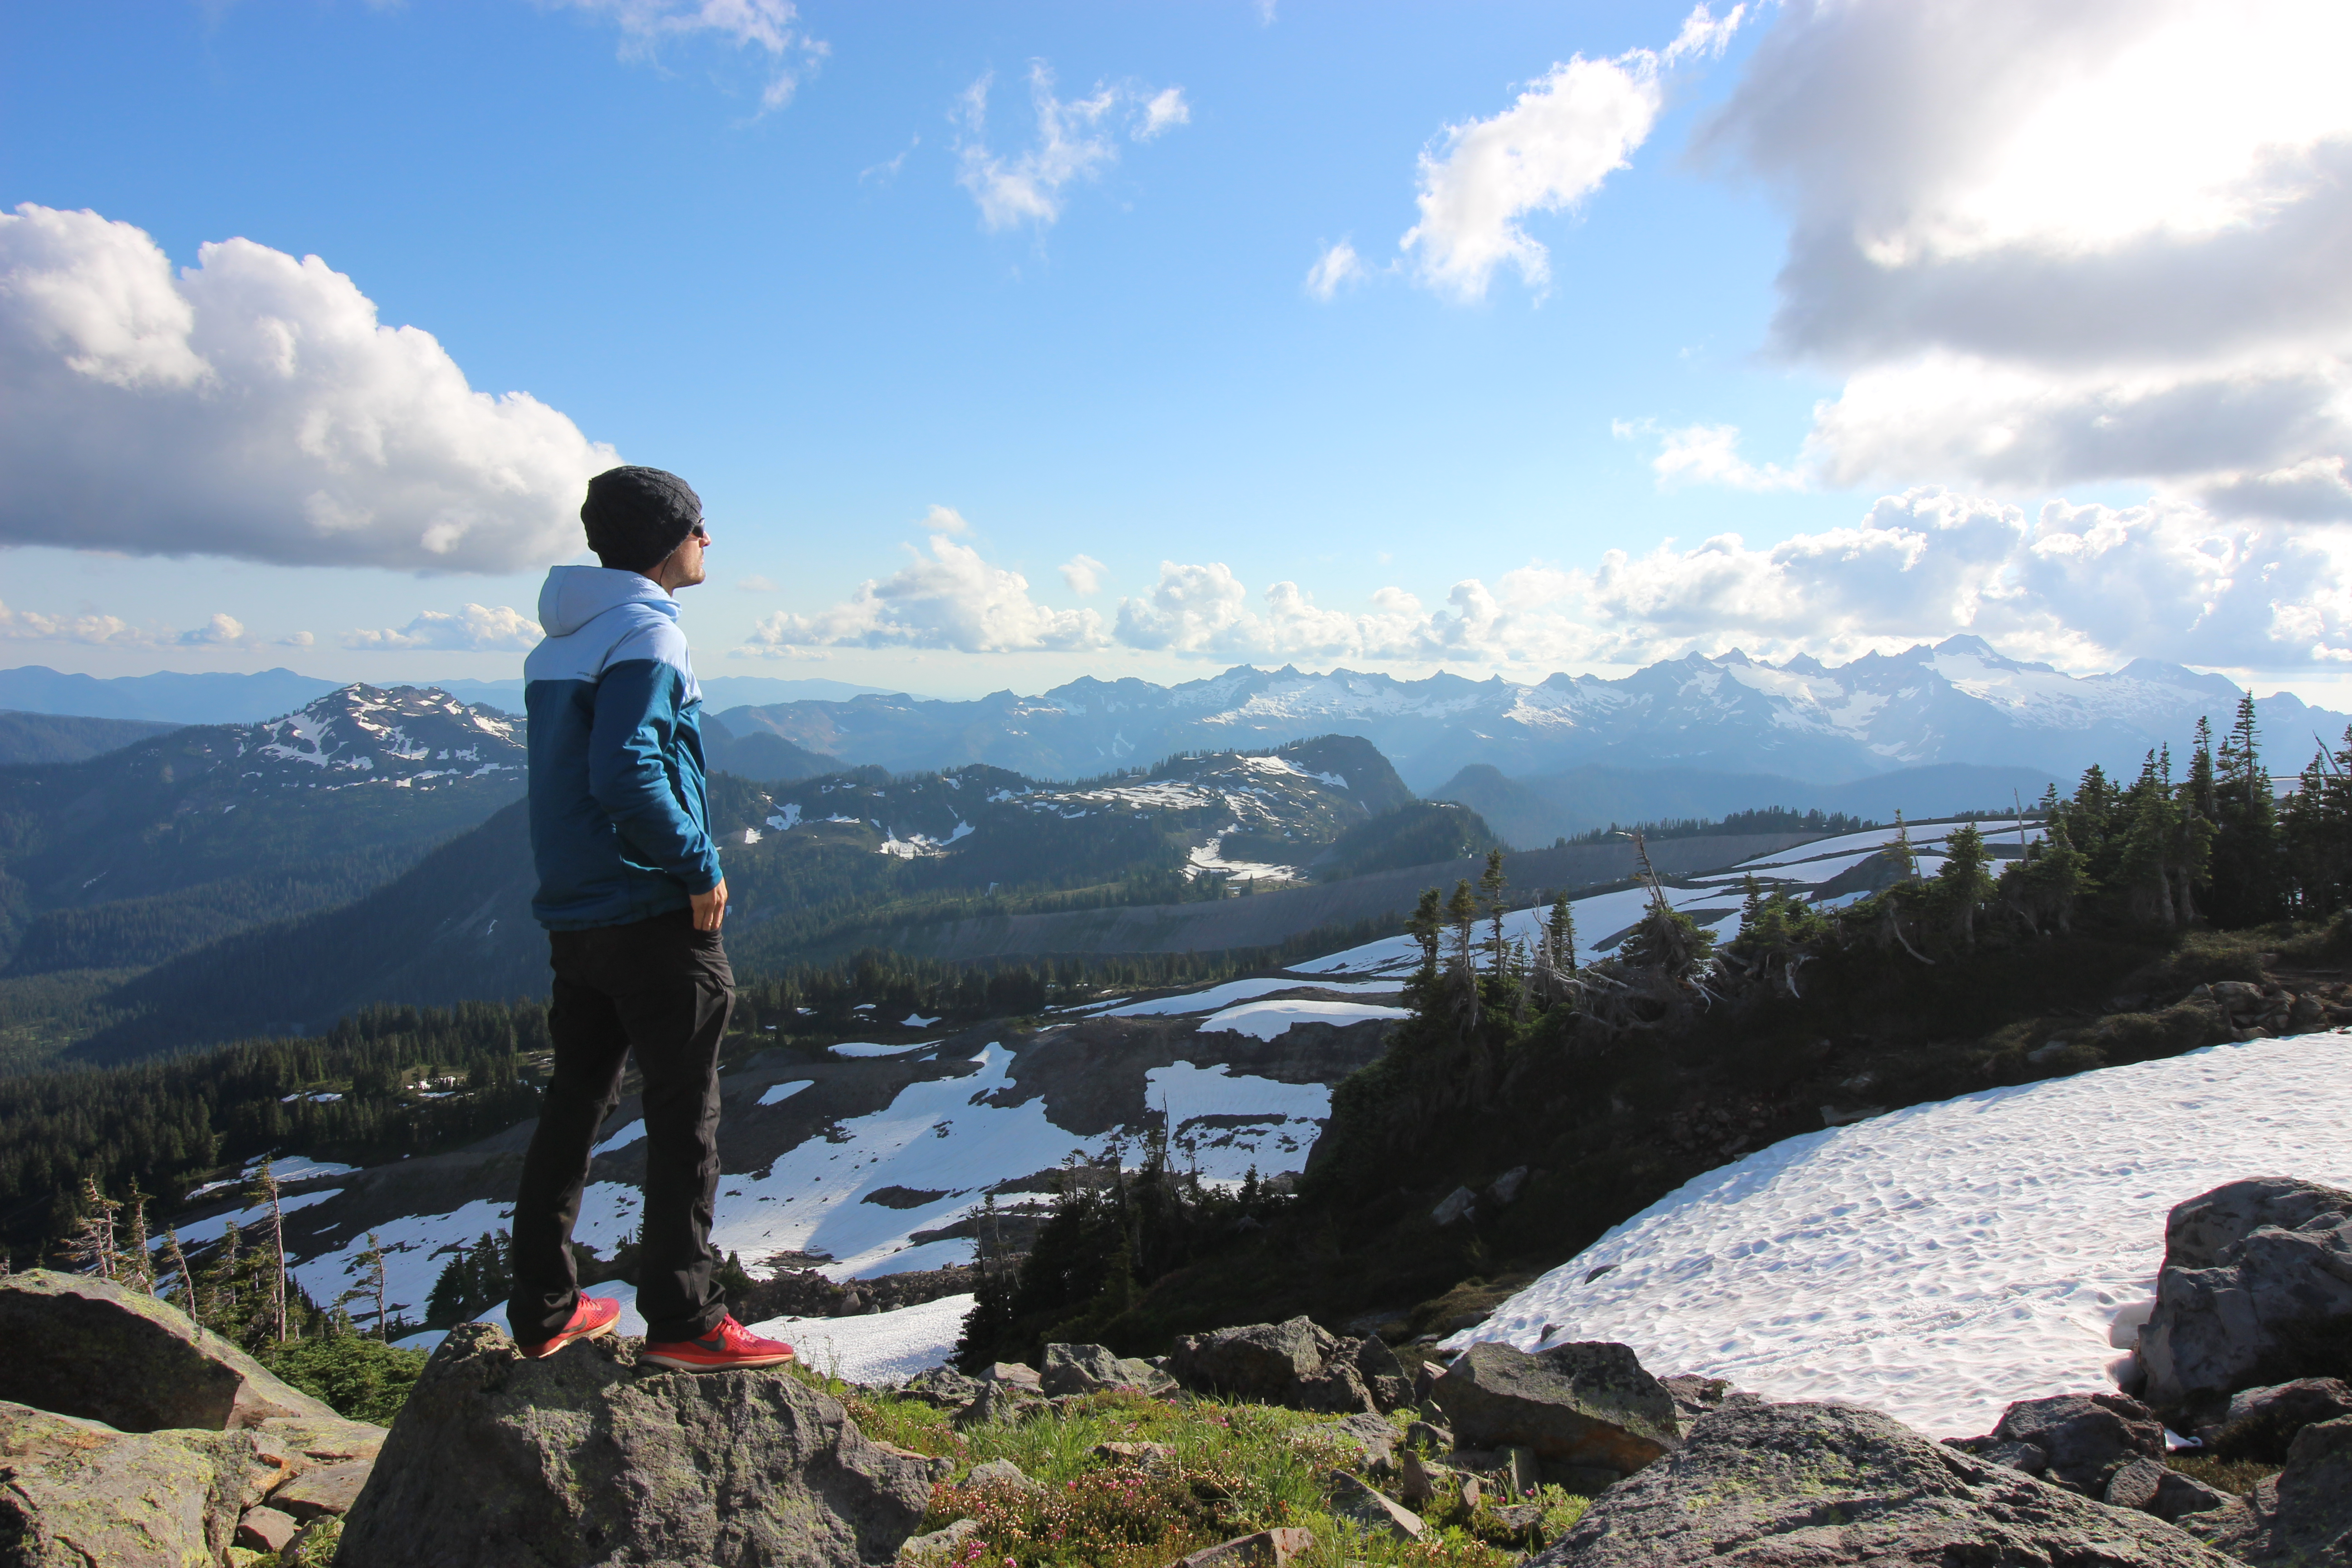 Summer Program - Hiking | NOLS Pacific Northwest Mountaineering and Sailing